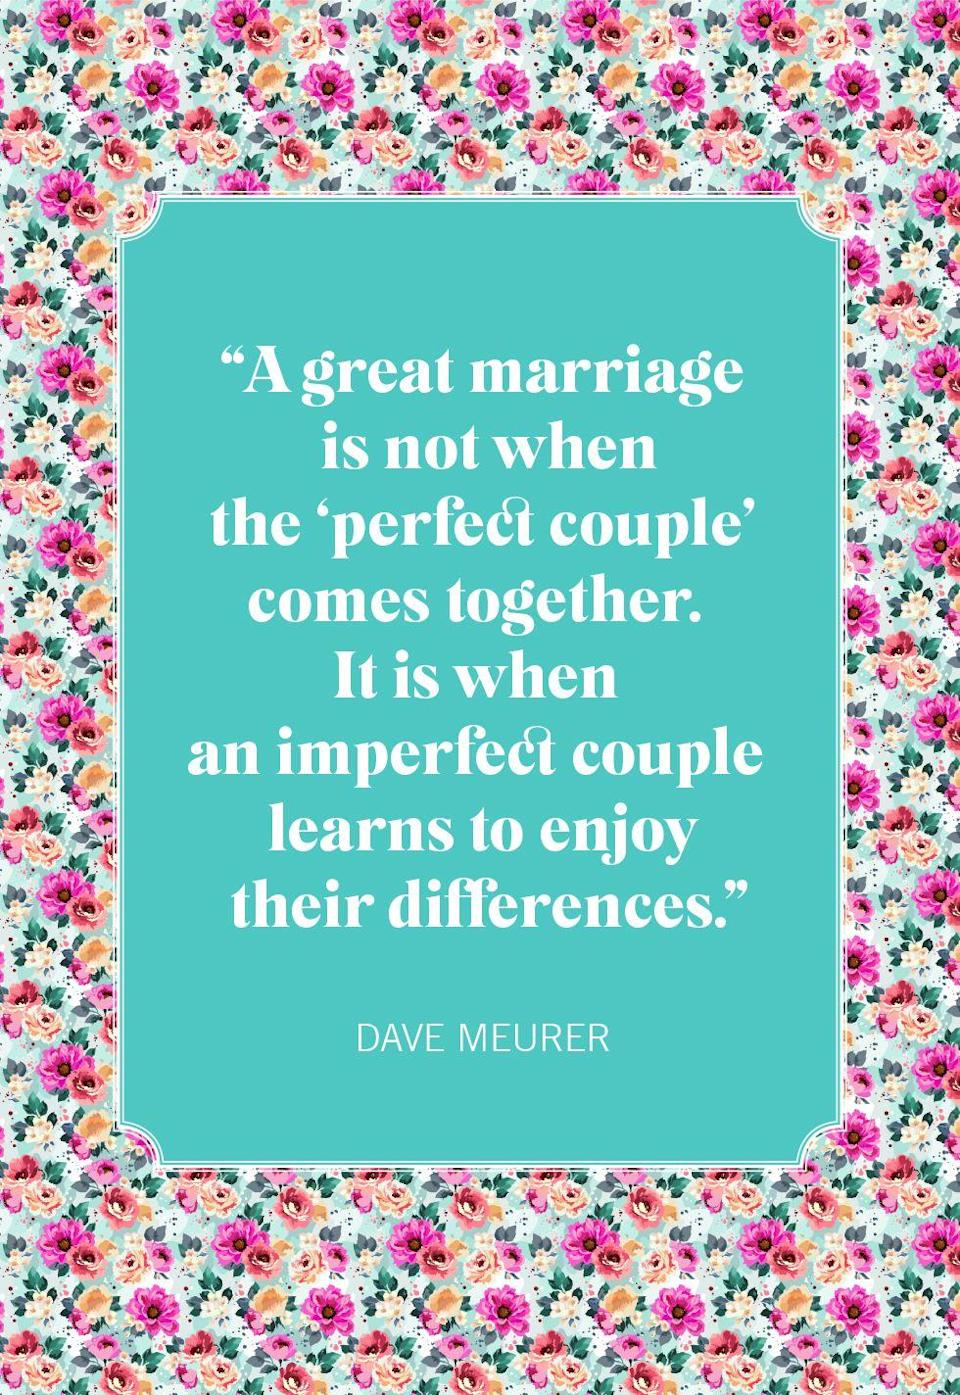 """<p>""""A great marriage is not when the 'perfect couple' comes together. It is when an imperfect couple learns to enjoy their differences.""""</p>"""